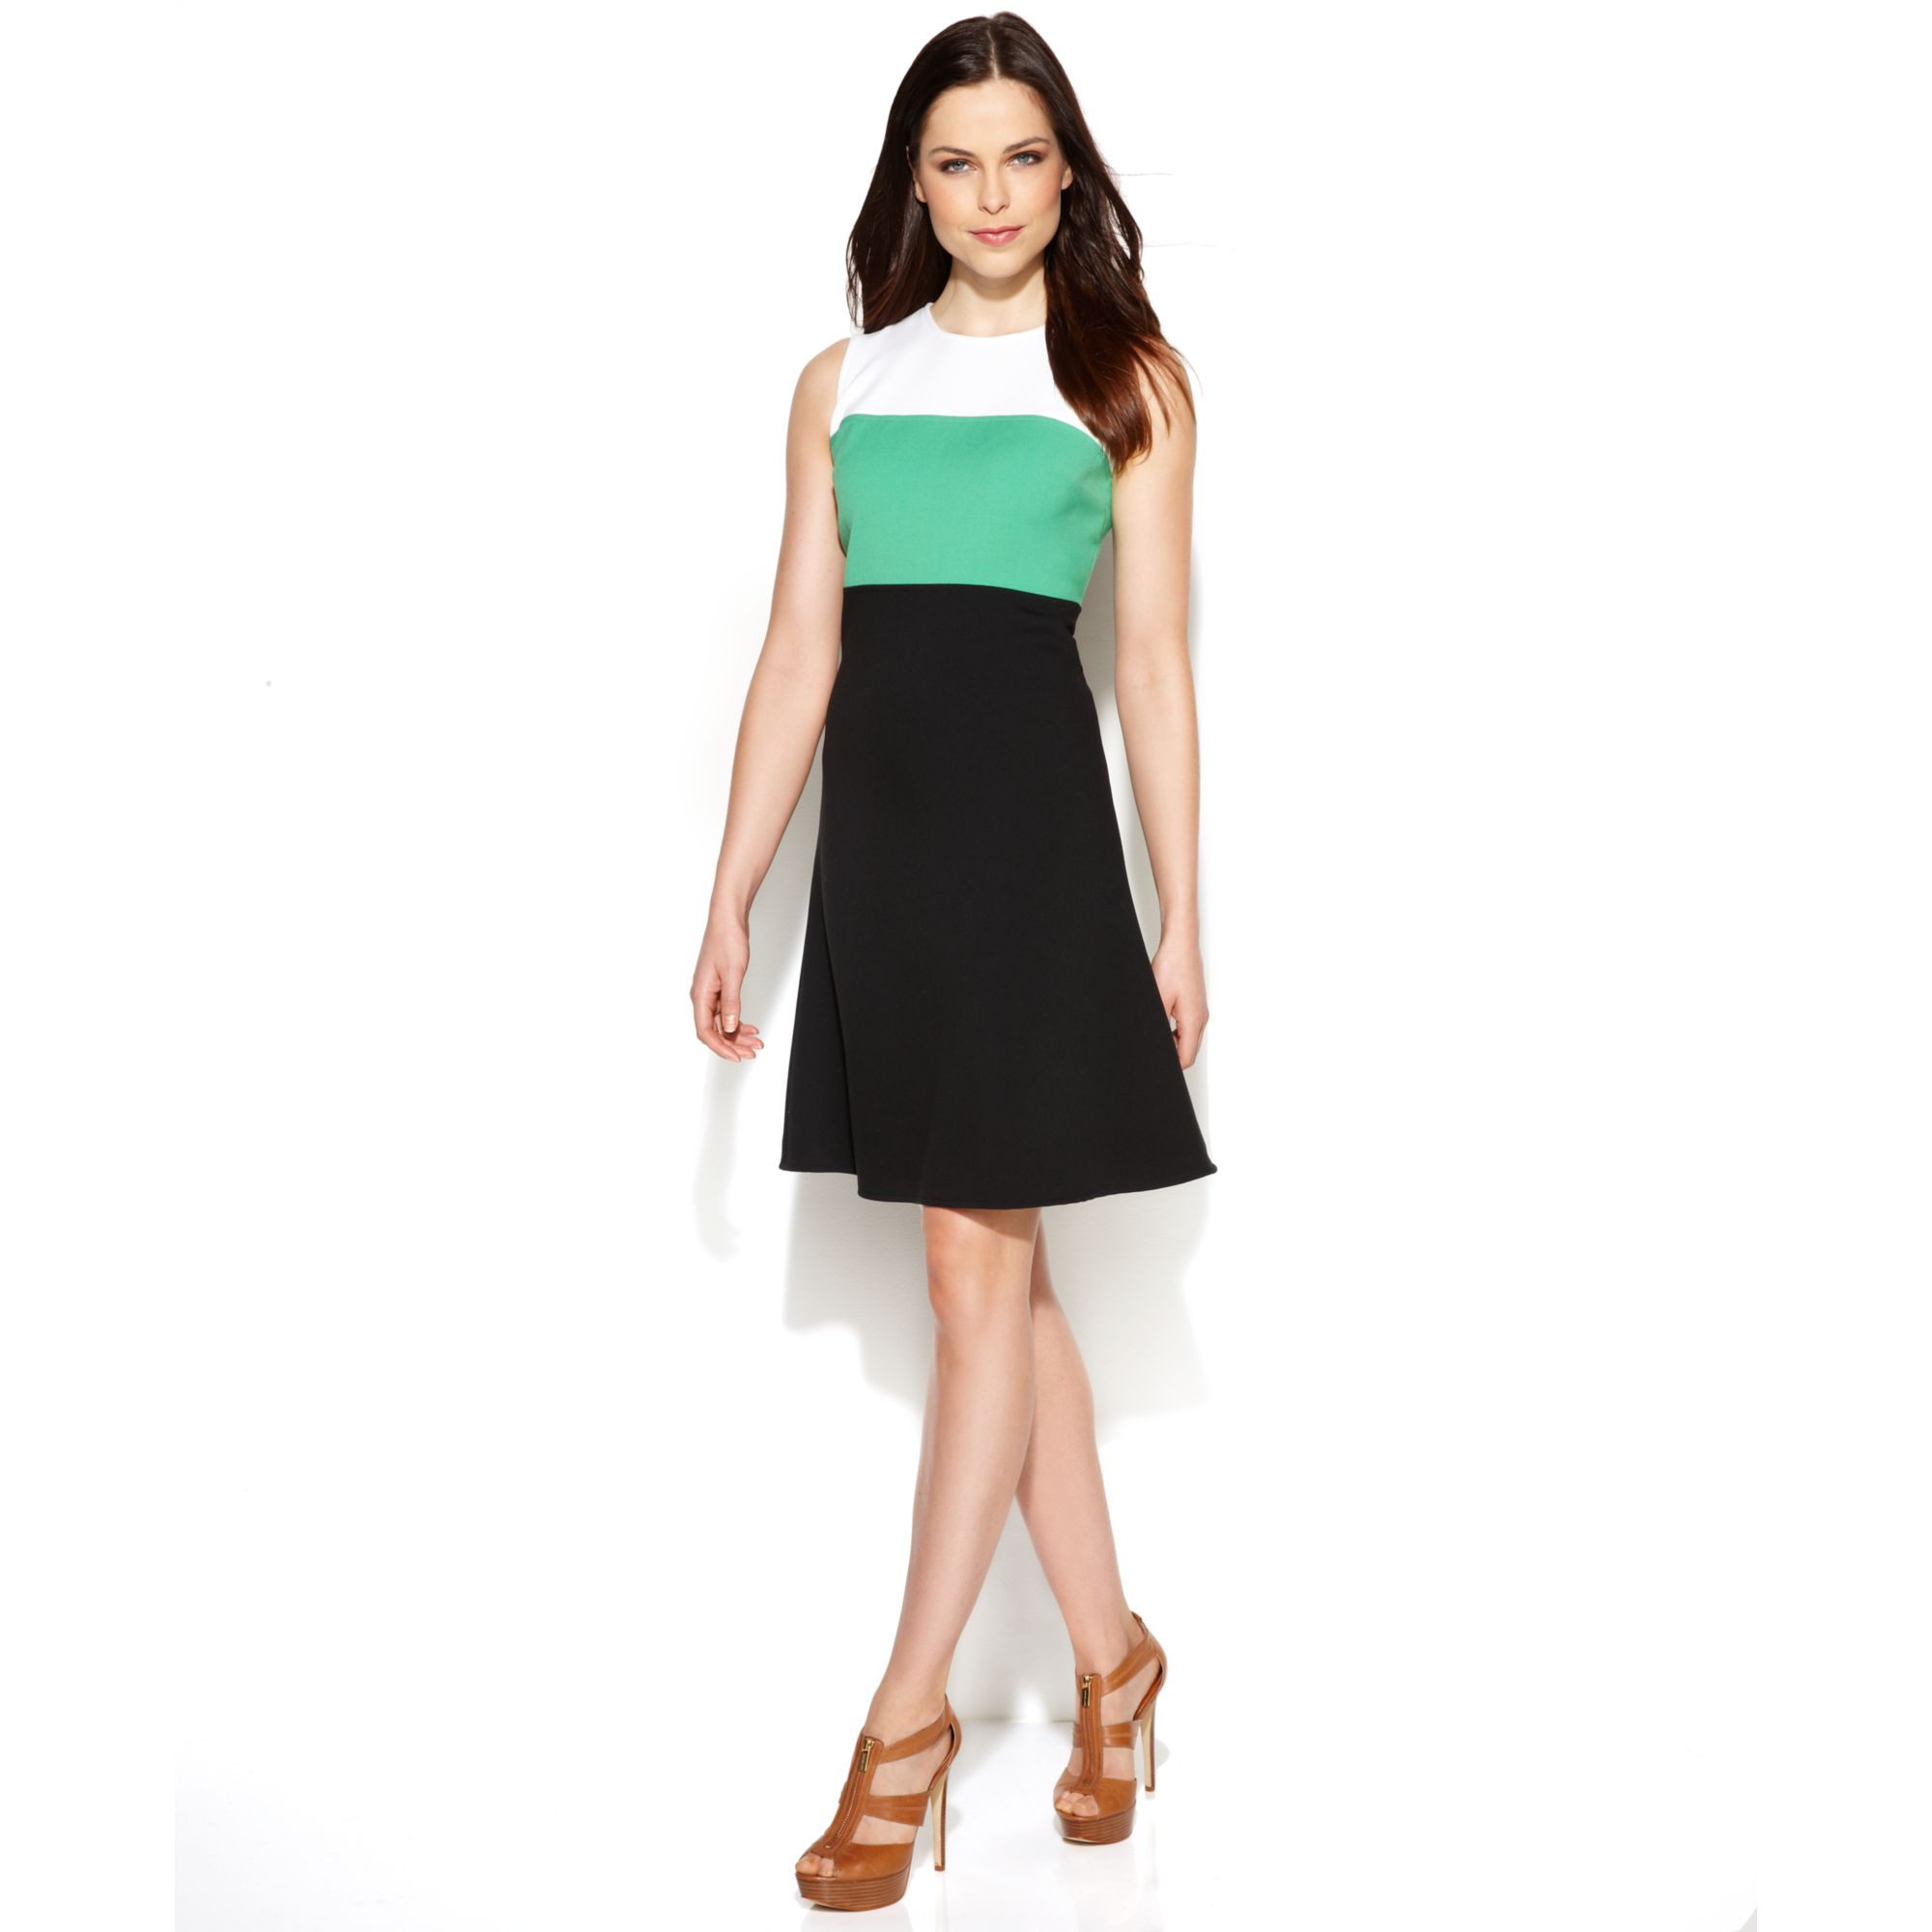 Women's Petite Dresses & Gowns | DillardsBuy Online Return Instore· Find A Store Near You· New Arrivals Daily· Style Since Types: Dresses, Handbags, Sunglasses, Tops, and More.